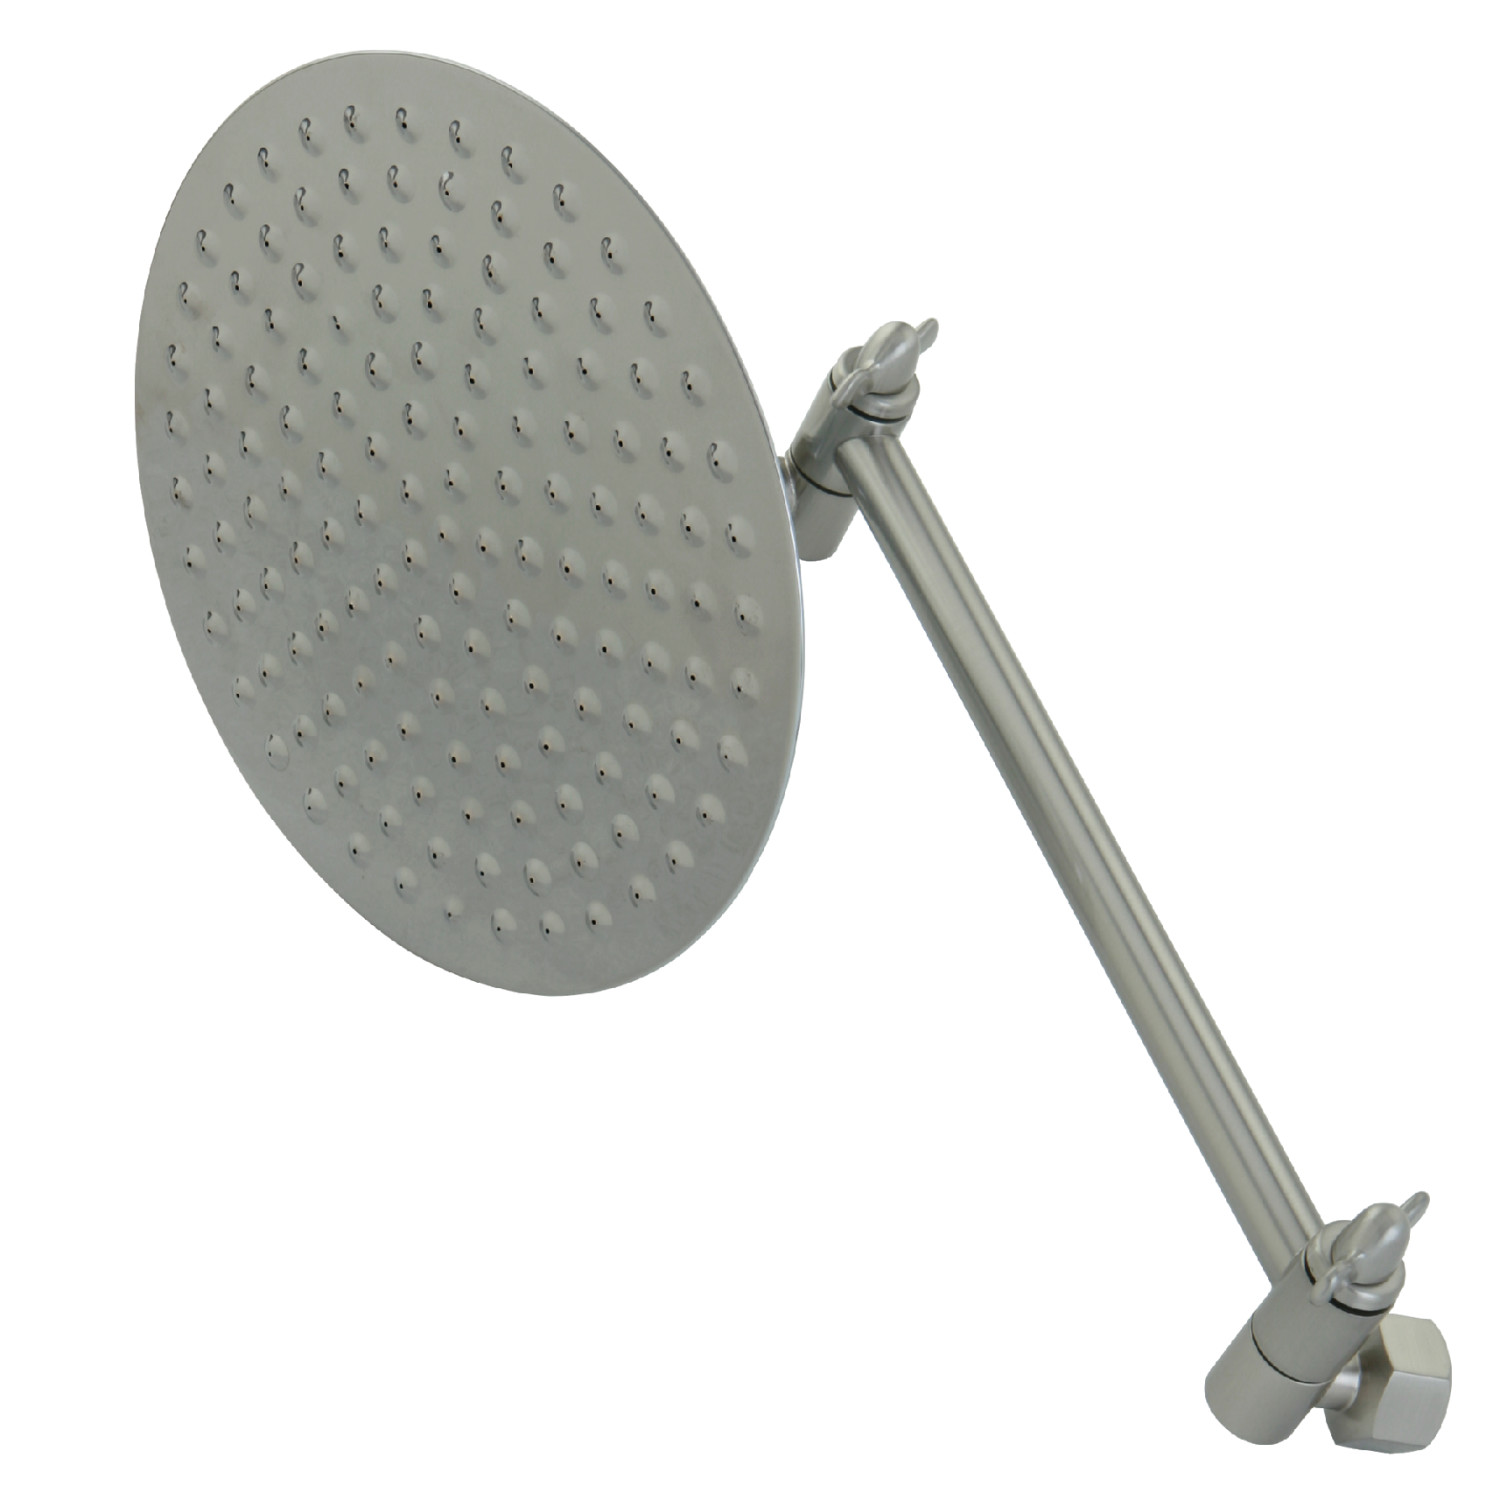 Elements Of Design Dk13628 Shower Head With Adjustable Shower Arm Brushed Nickel